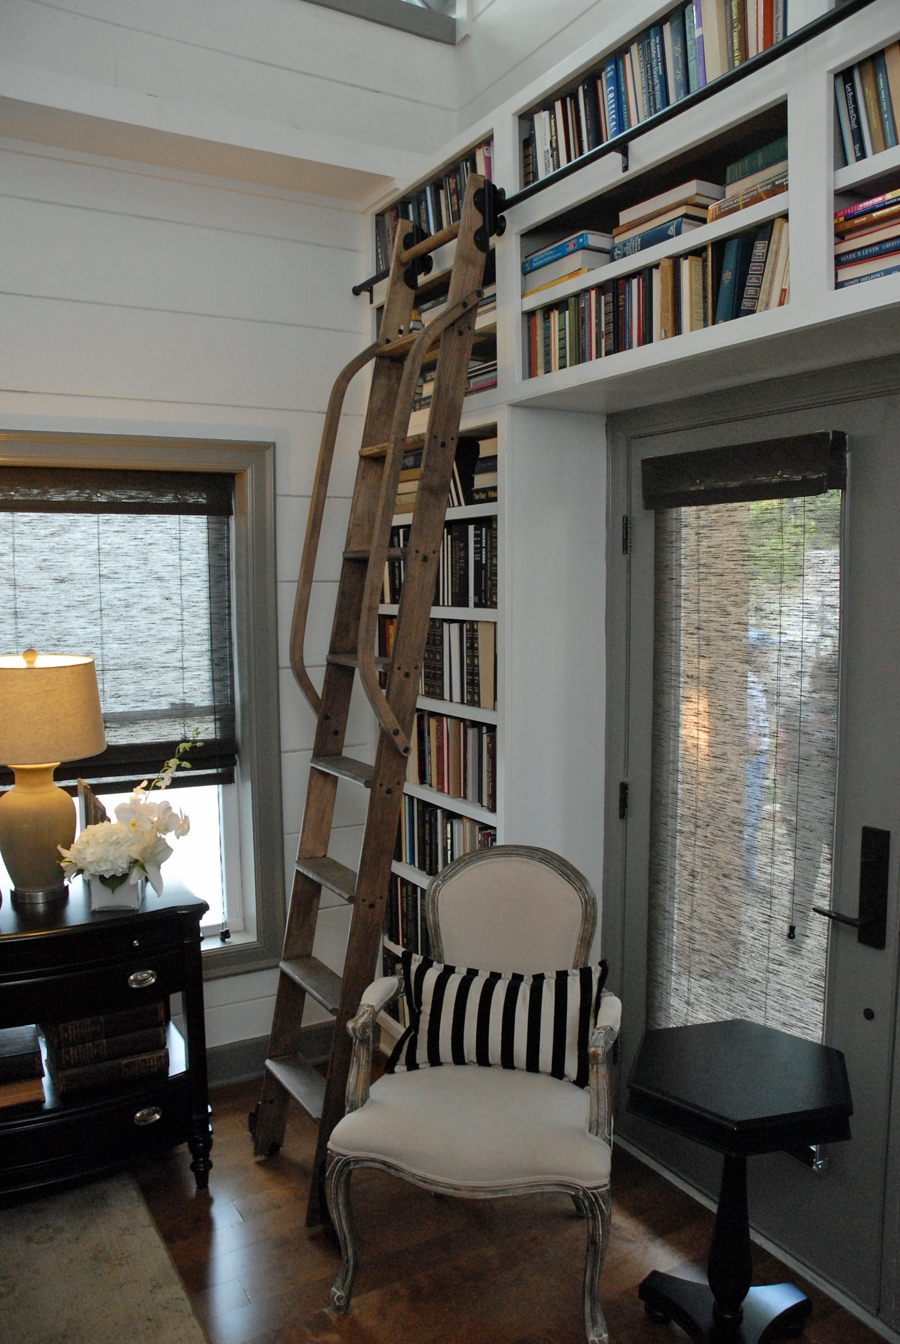 The Rolling Ladder Gallery Regarding Sliding Library Ladder (#15 of 15)